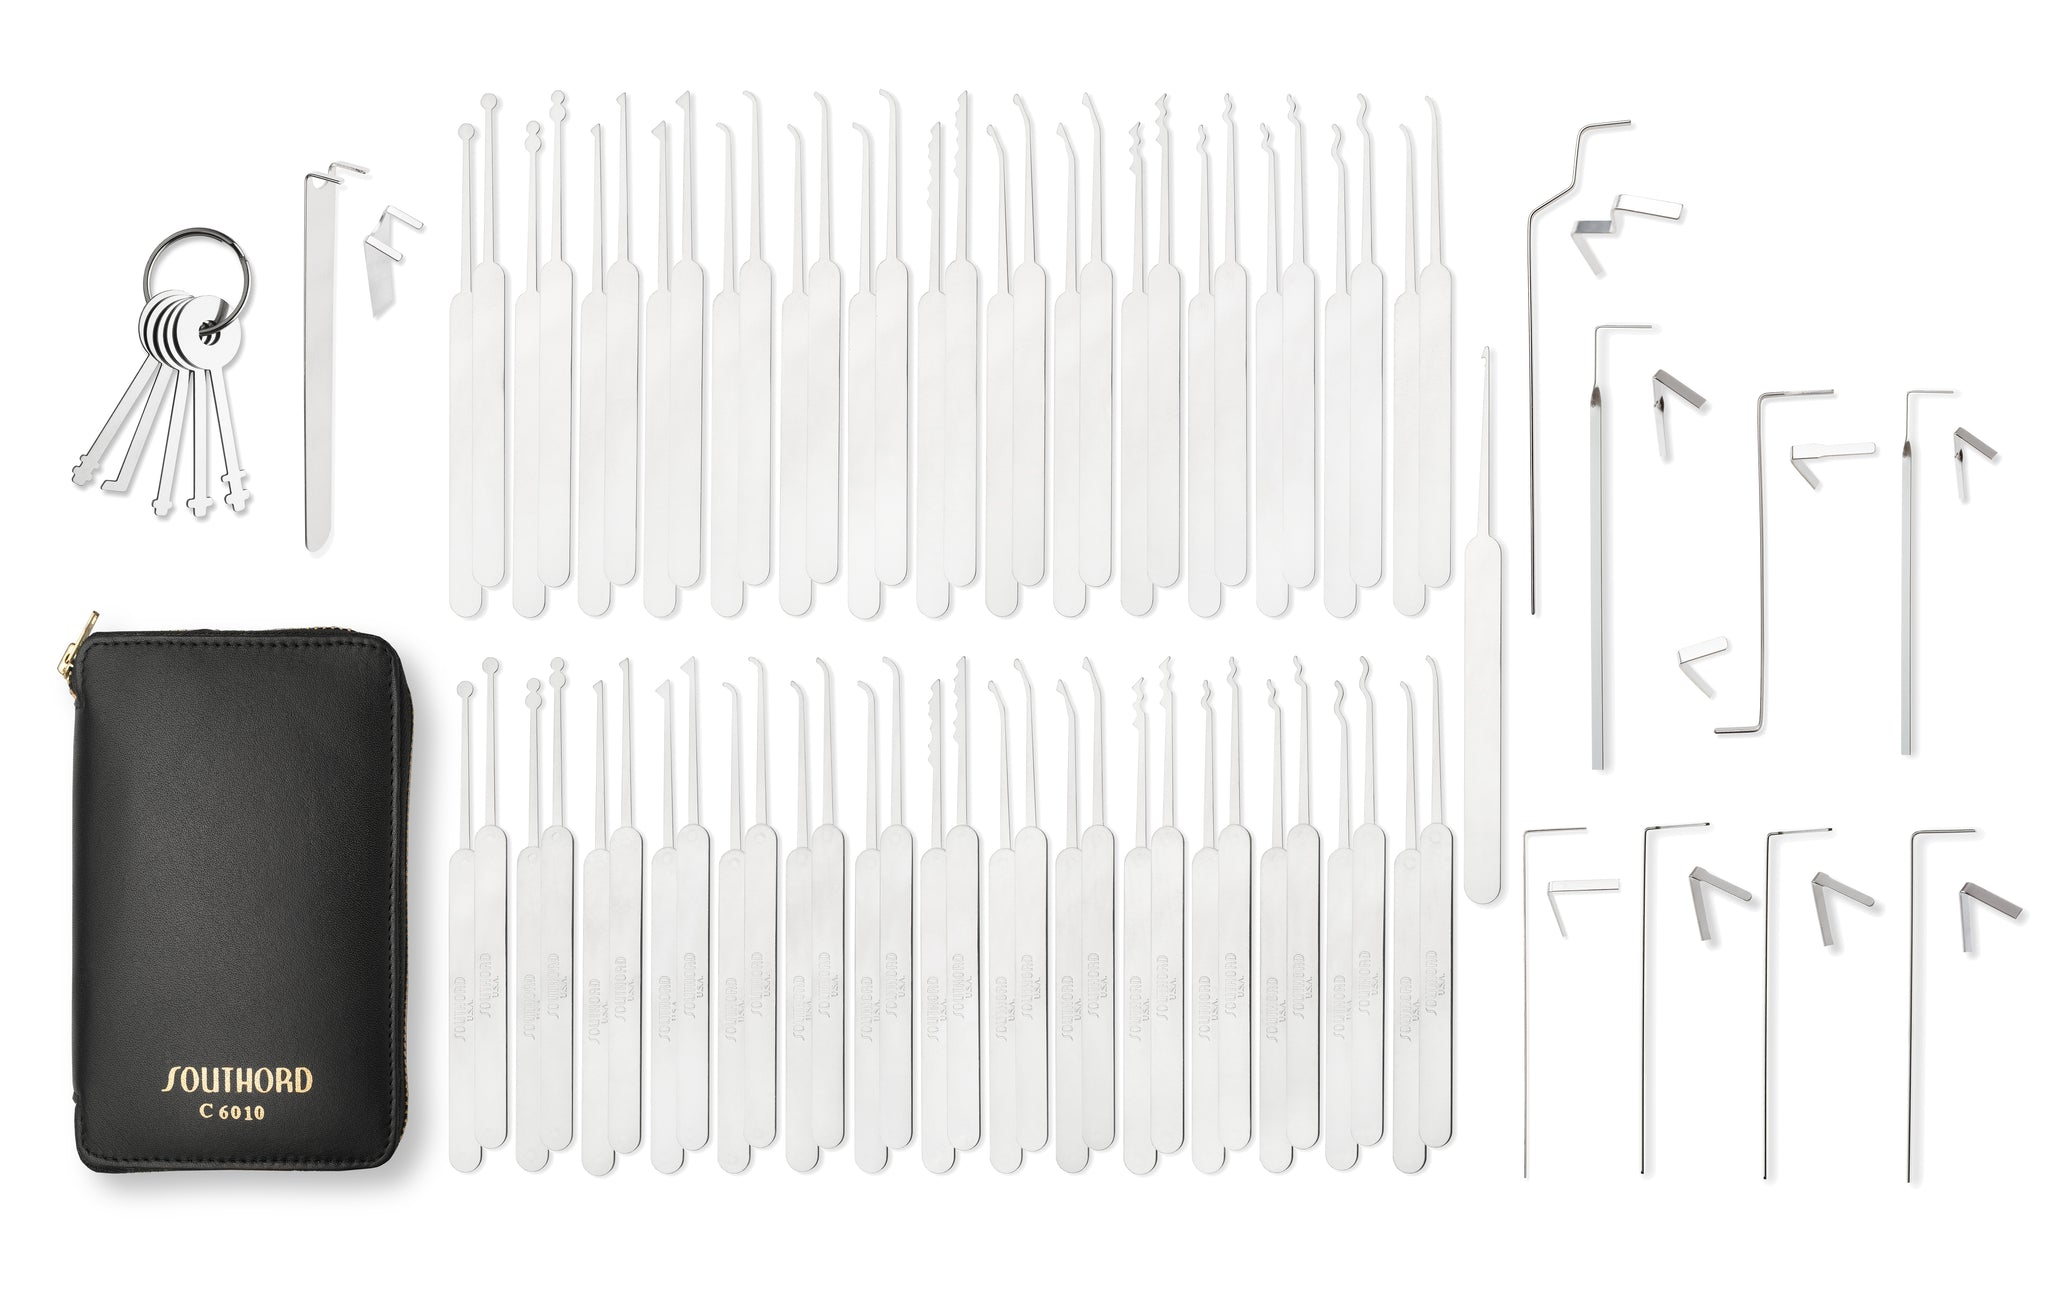 Seventy-Five Piece Slim Line Lock Pick Set - C6010